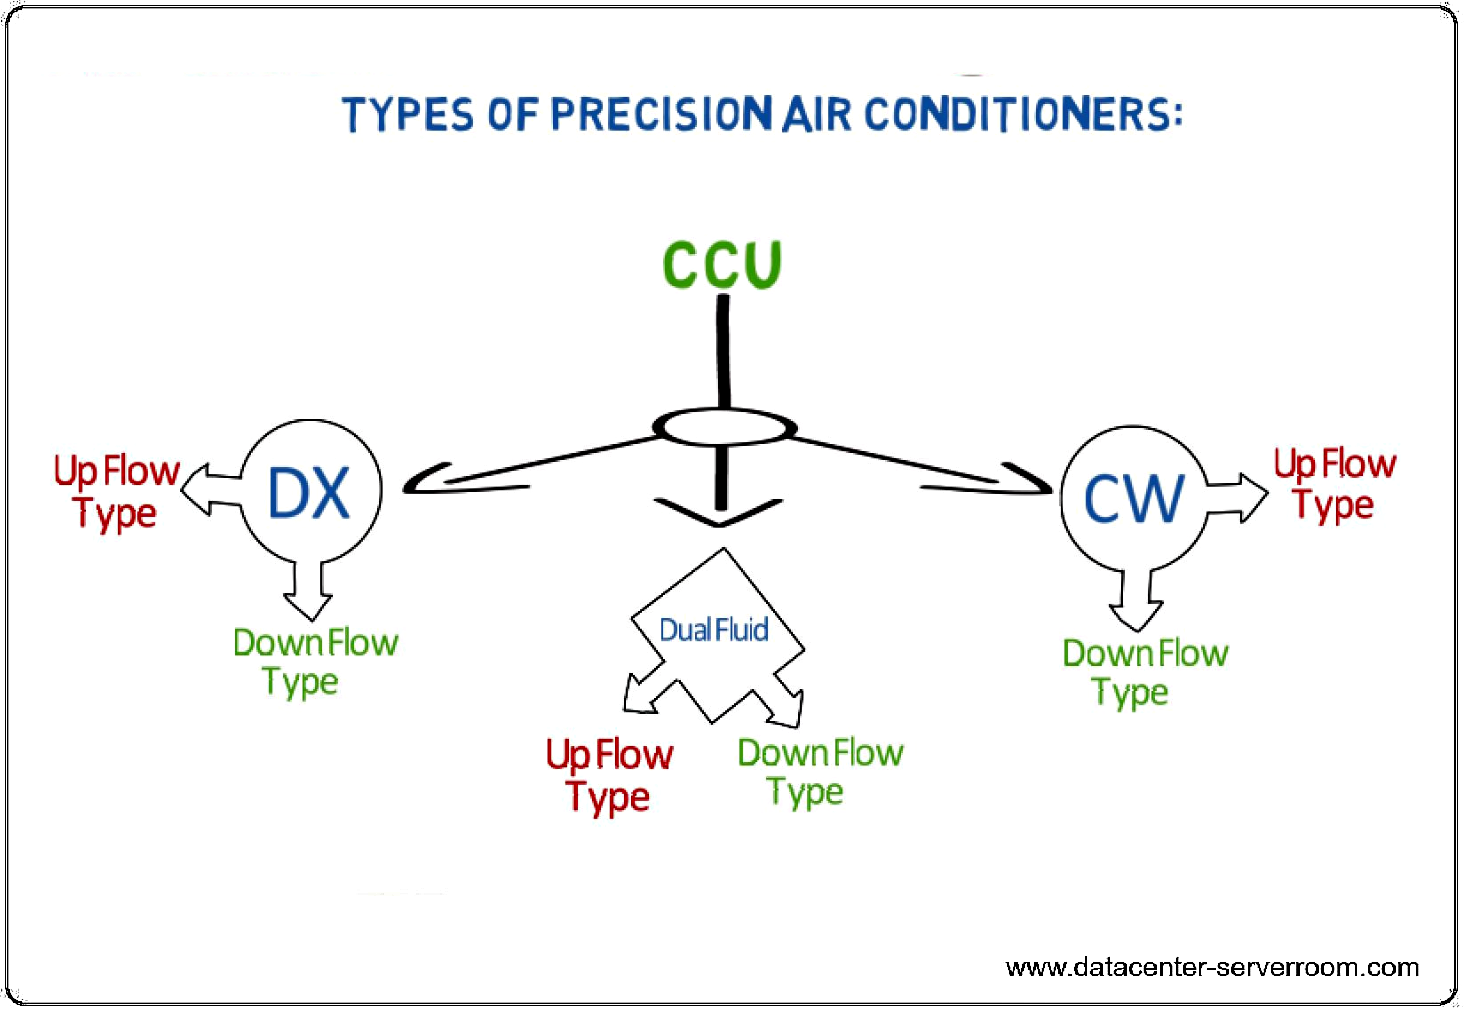 Types of Close control Unit for server room and datacenter.